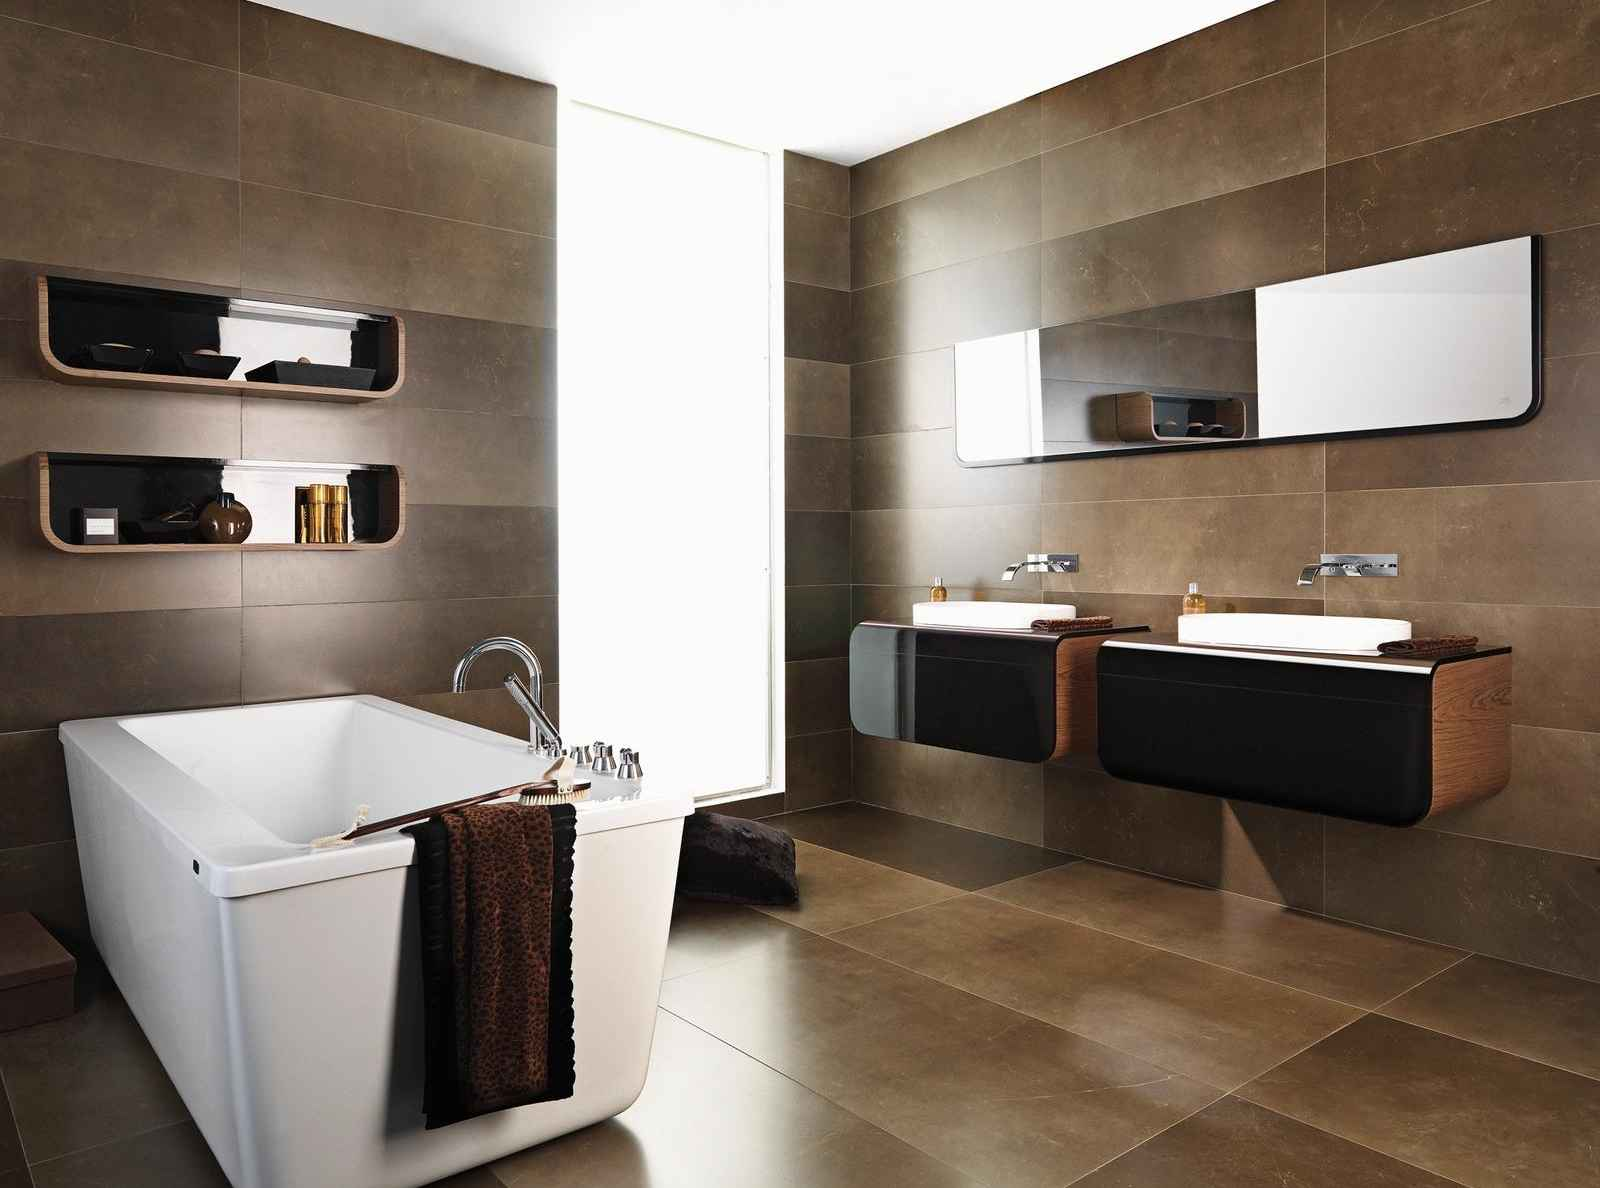 Durable bathroom ceramic tile with natural stone accent